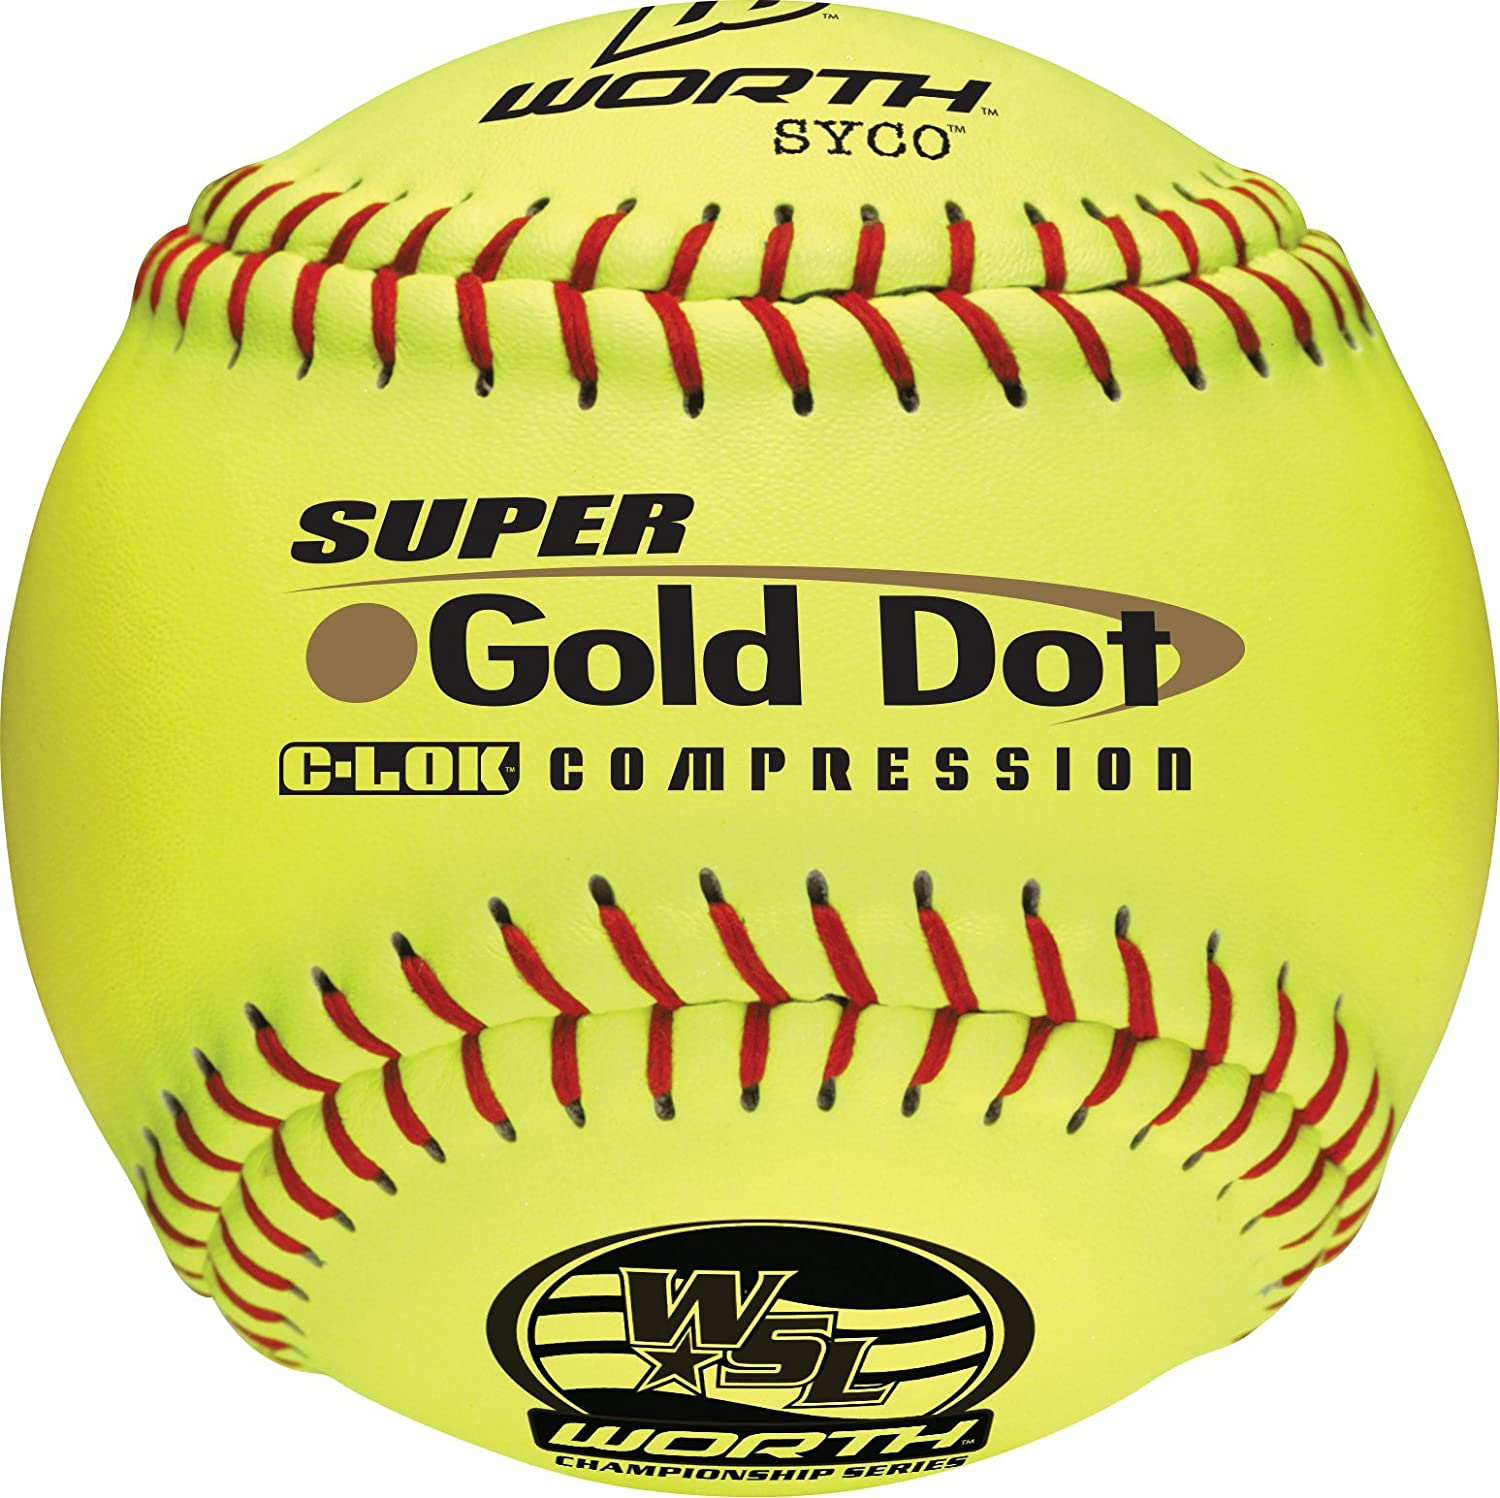 Worth WSL slow-pitch Pro Comp Superドットソフトボール、12